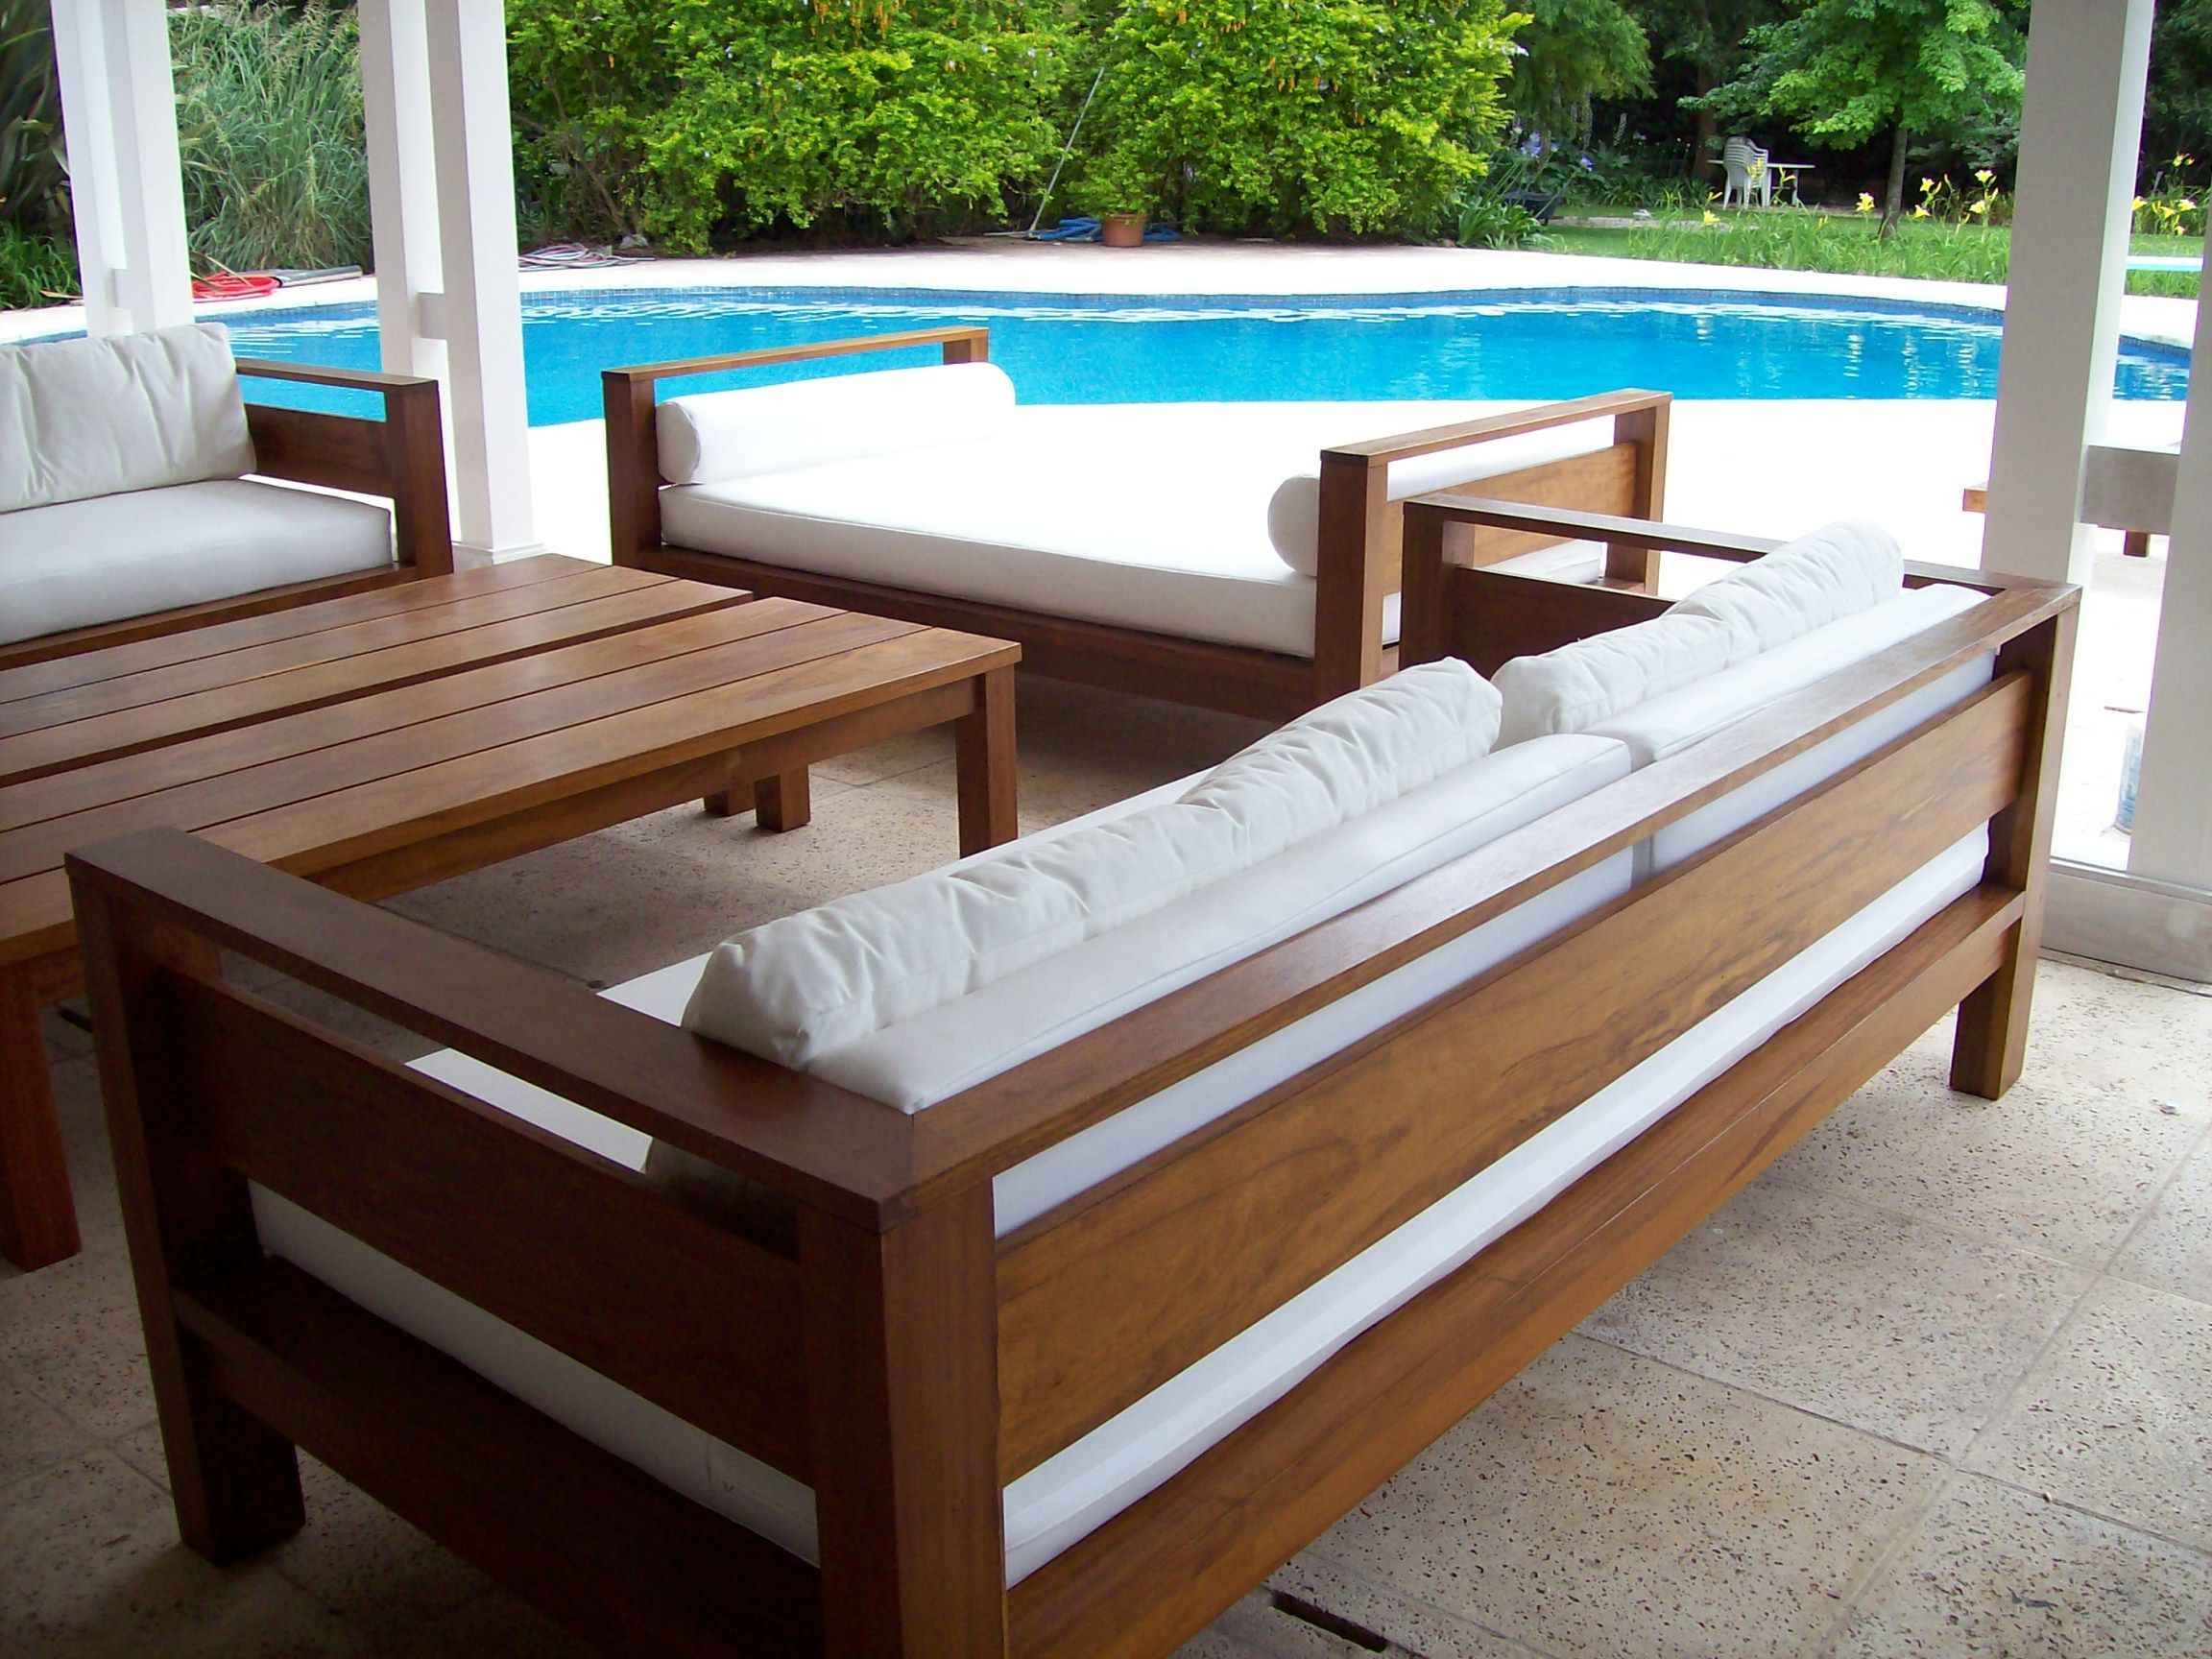 Muebles madera jardin exterior 20170730152159 for Muebles outdoor